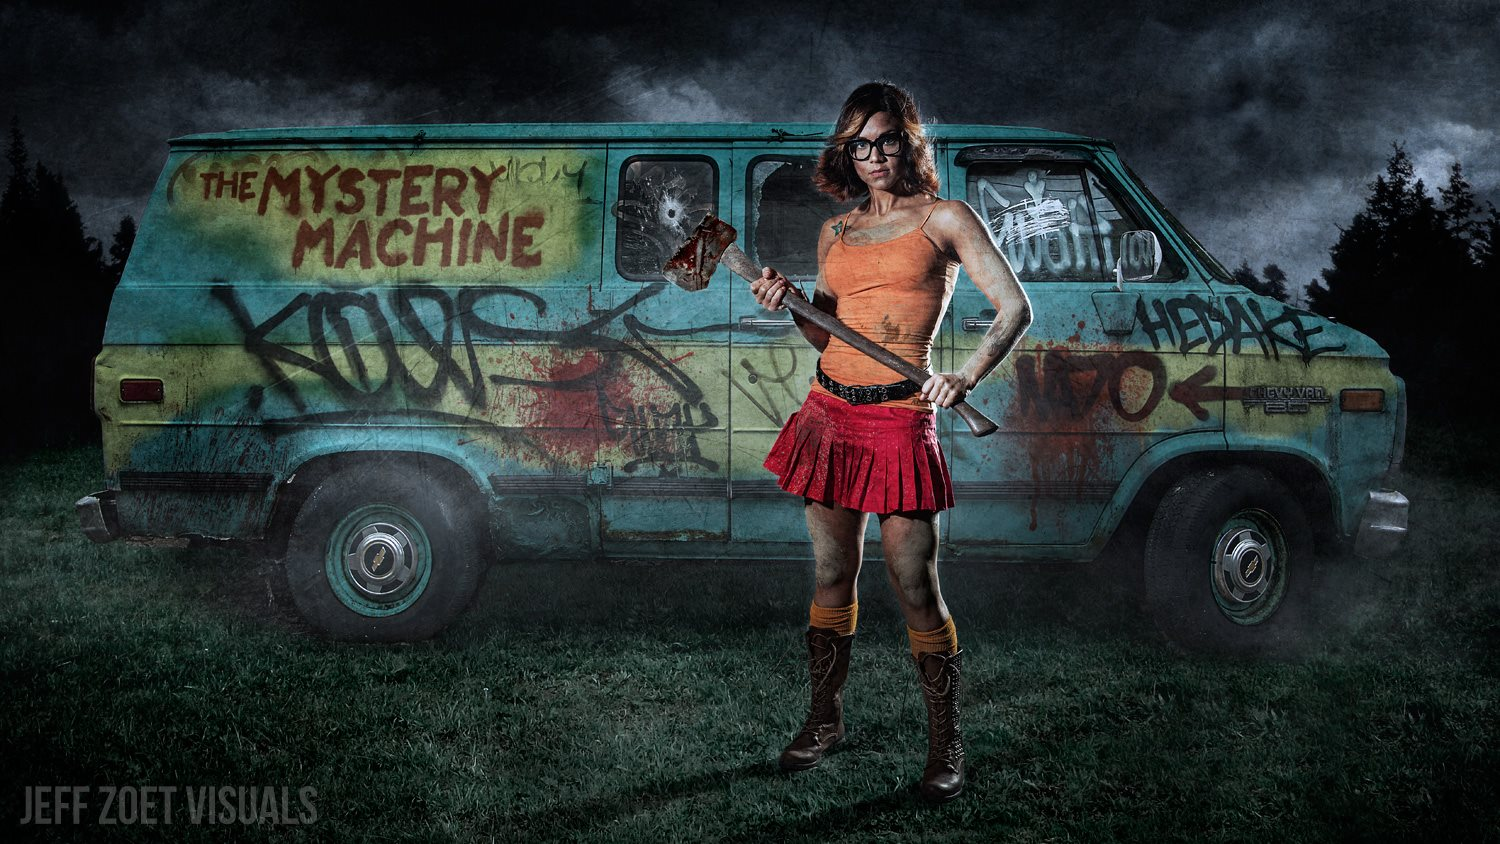 Velma and the Mistery Machine